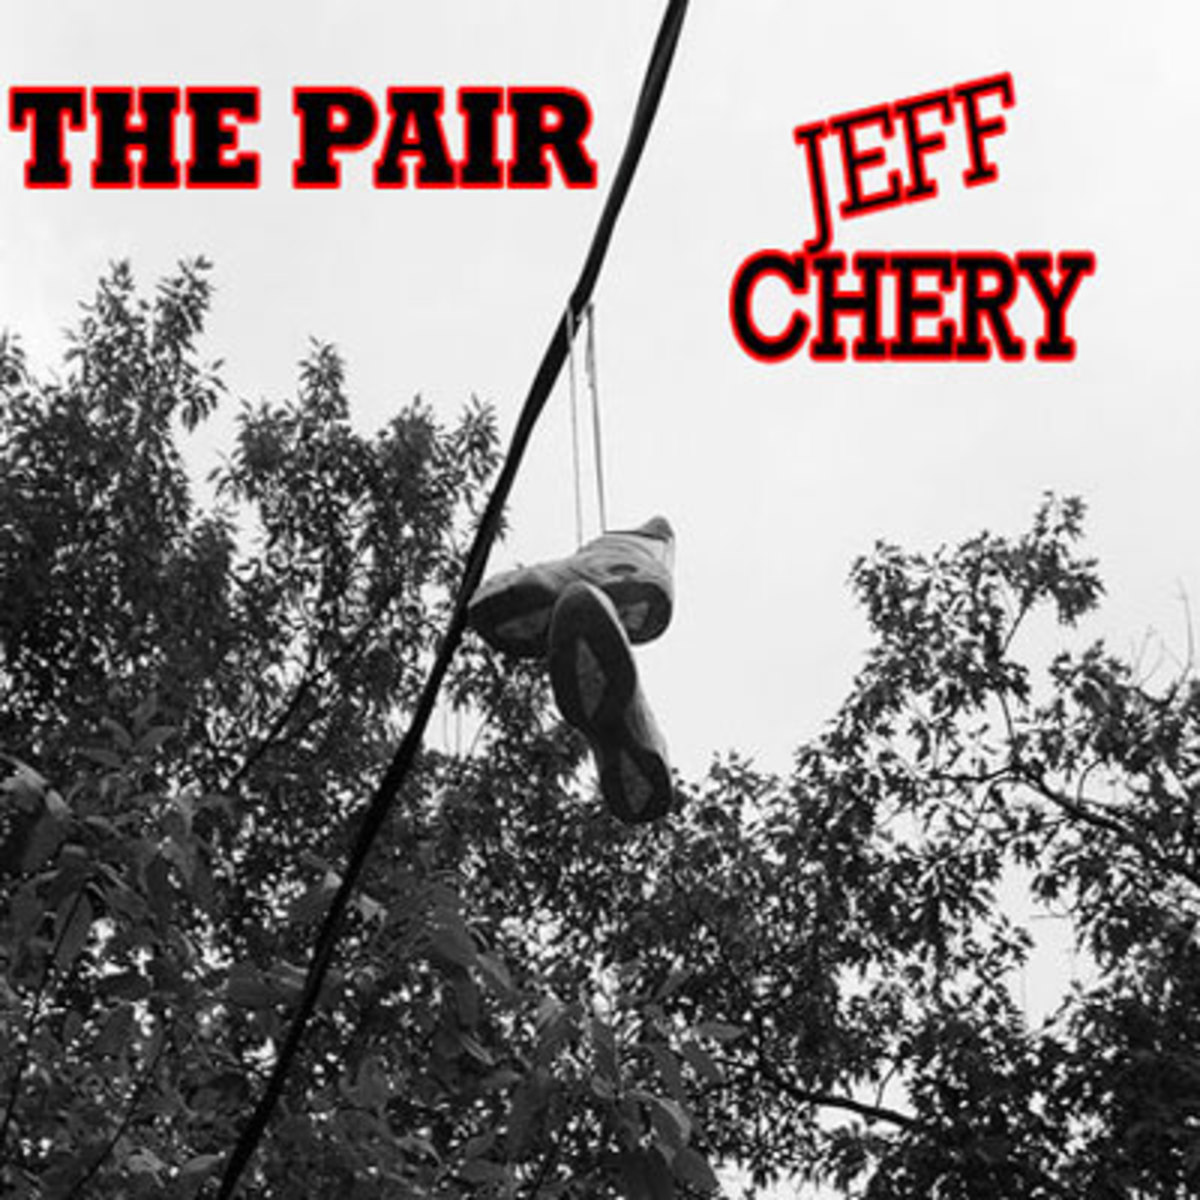 jeffchery-thepair.jpg